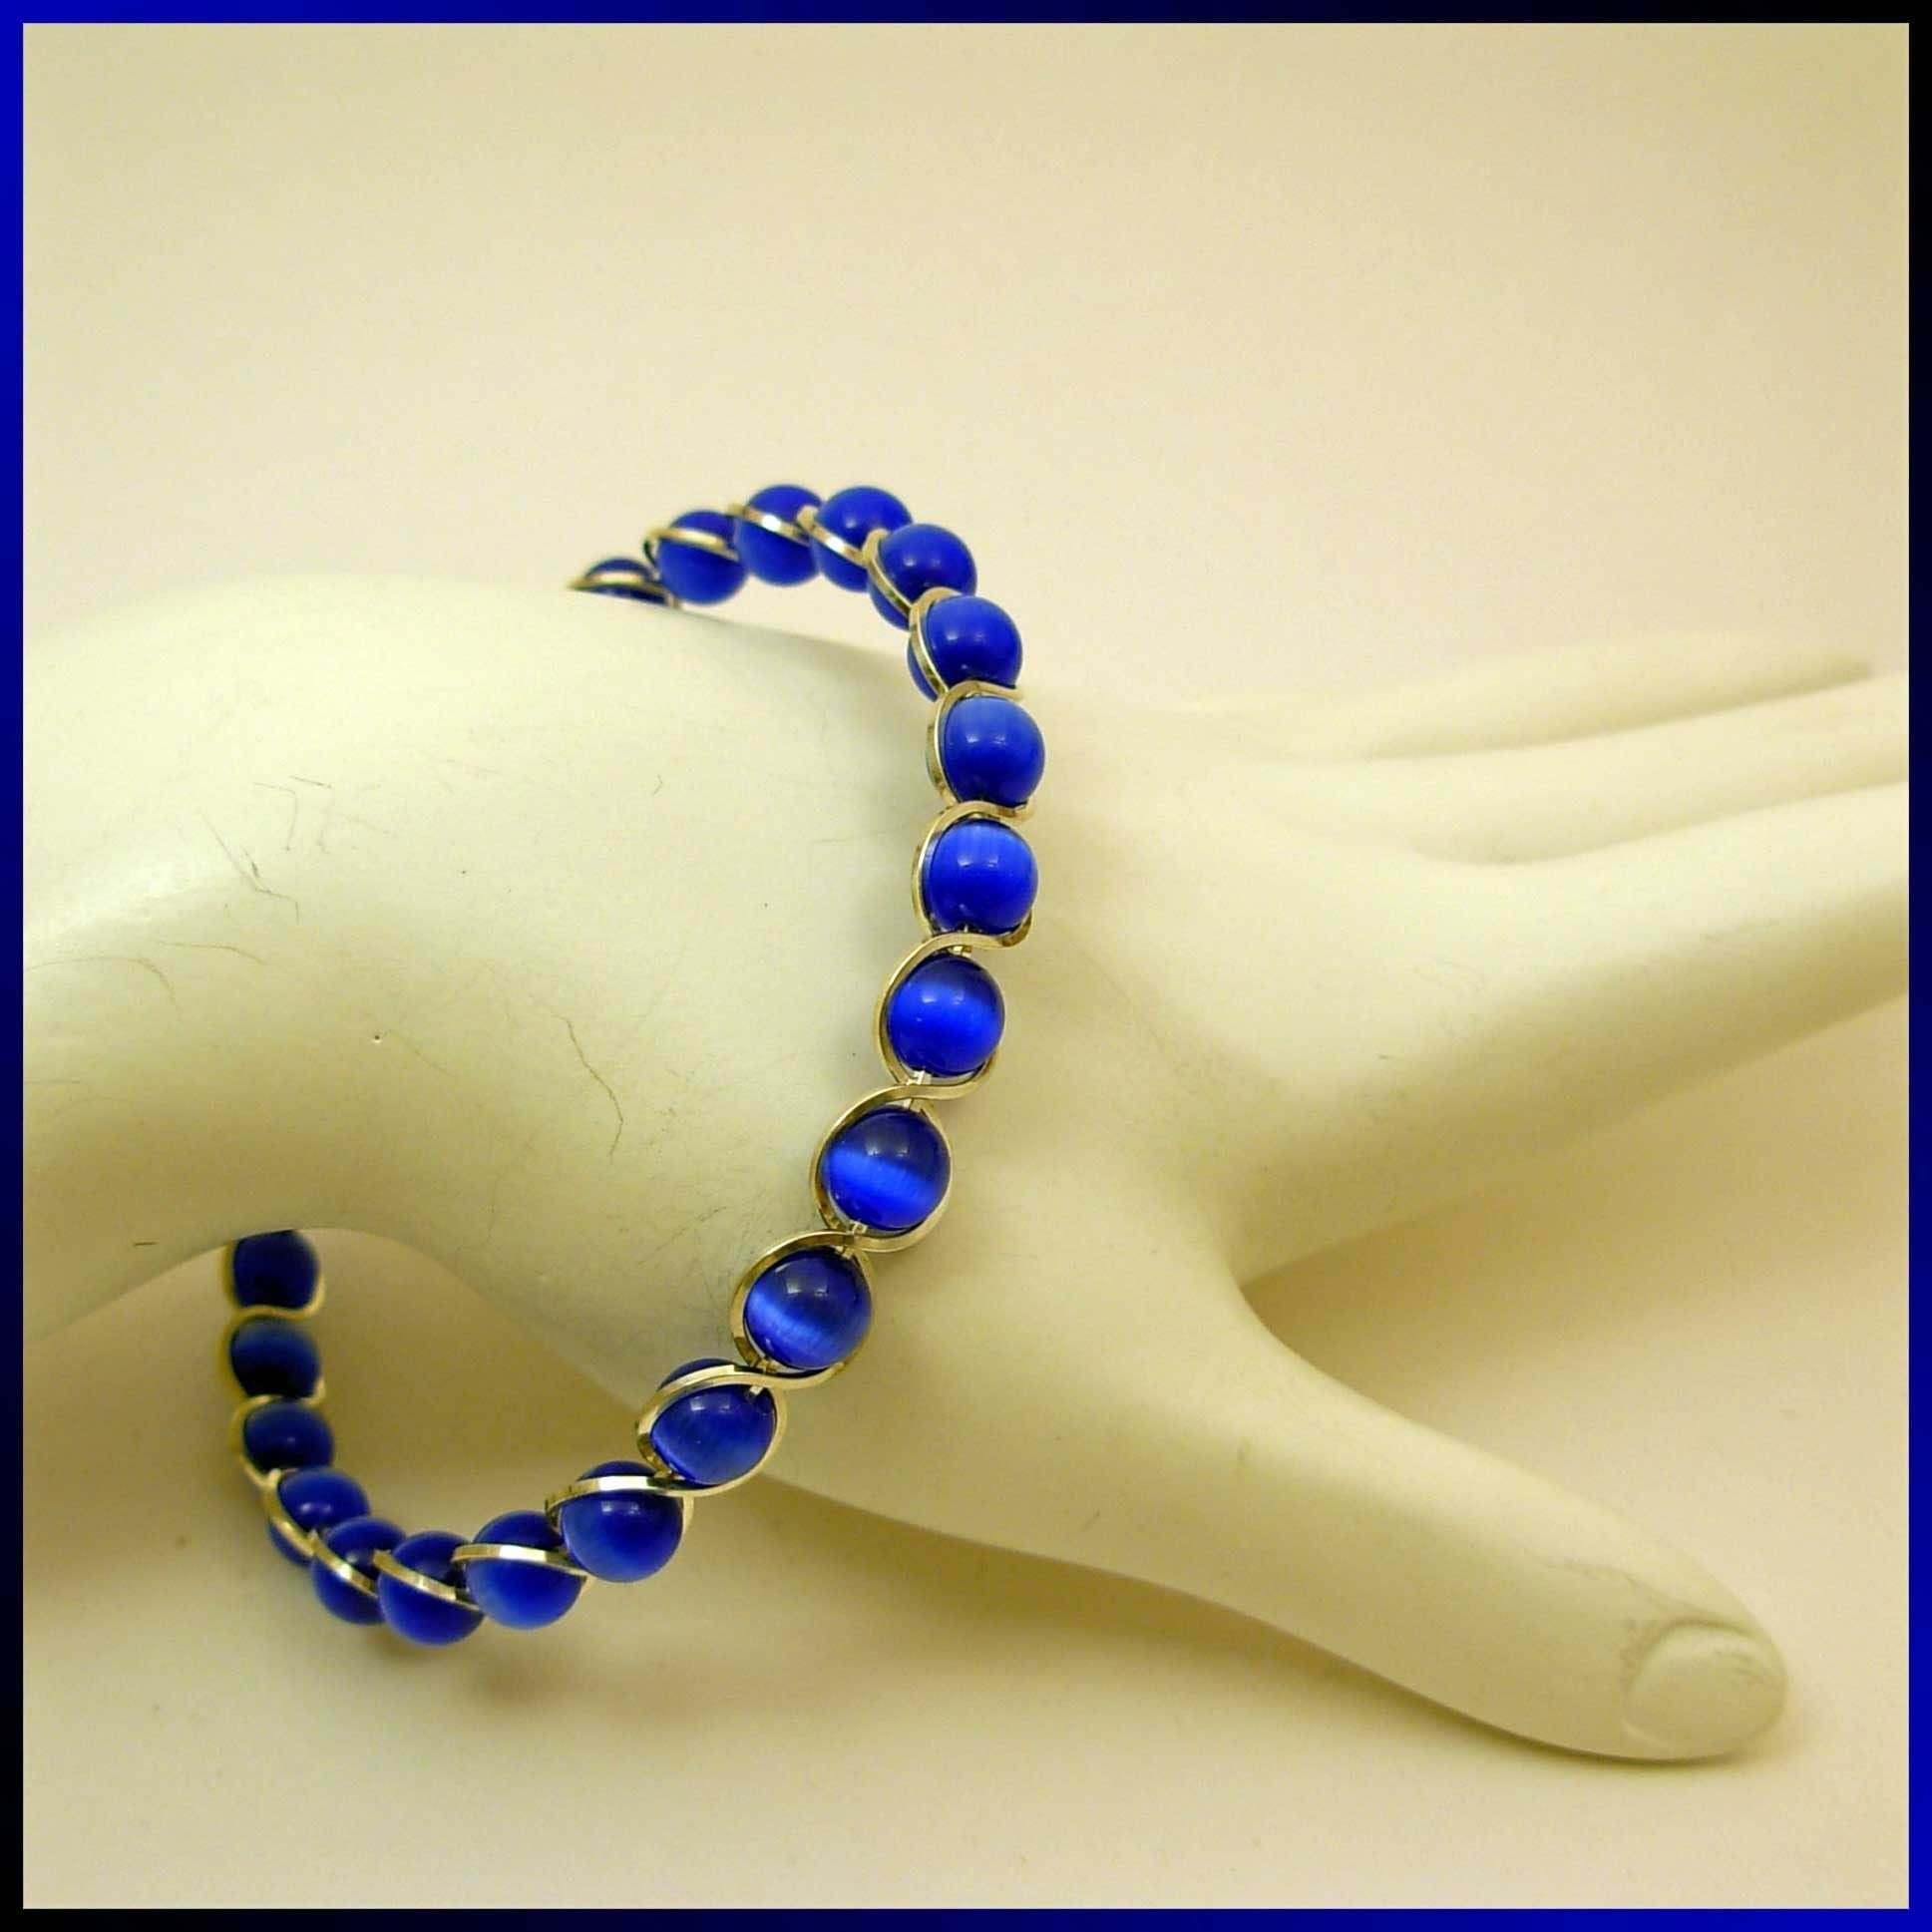 Etsy - Sterling Silver Bracelet with Blue Catseye / Fiber Optic Beads